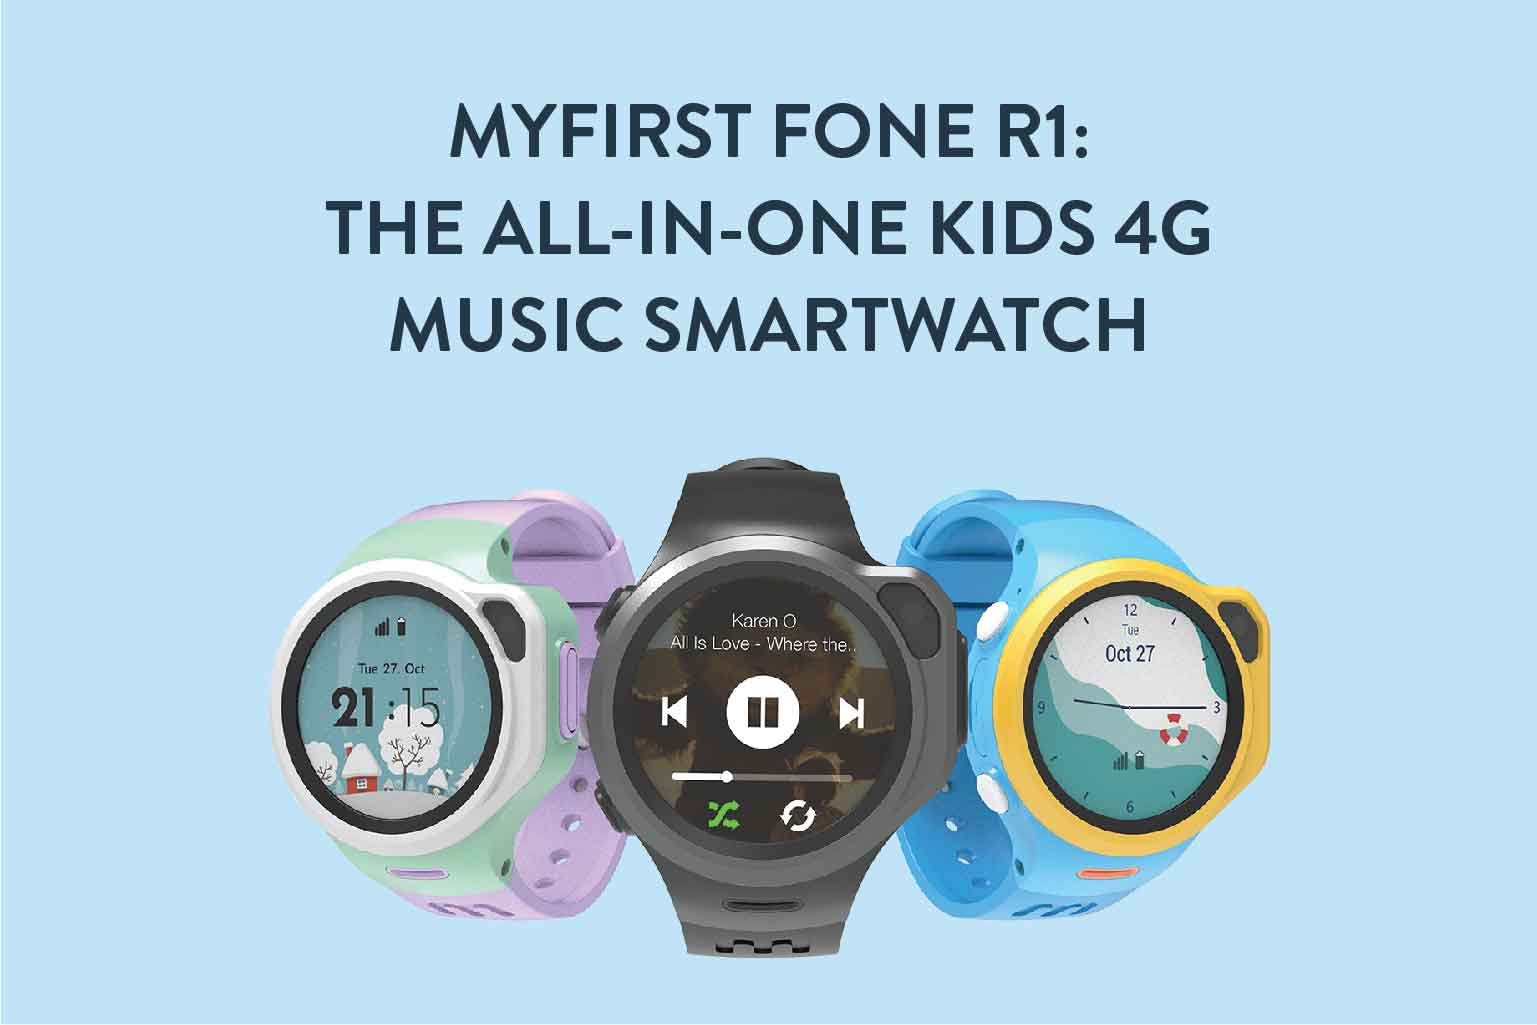 MyFirst Fone R1: The All-In-One Kids 4G Music Smart Watch